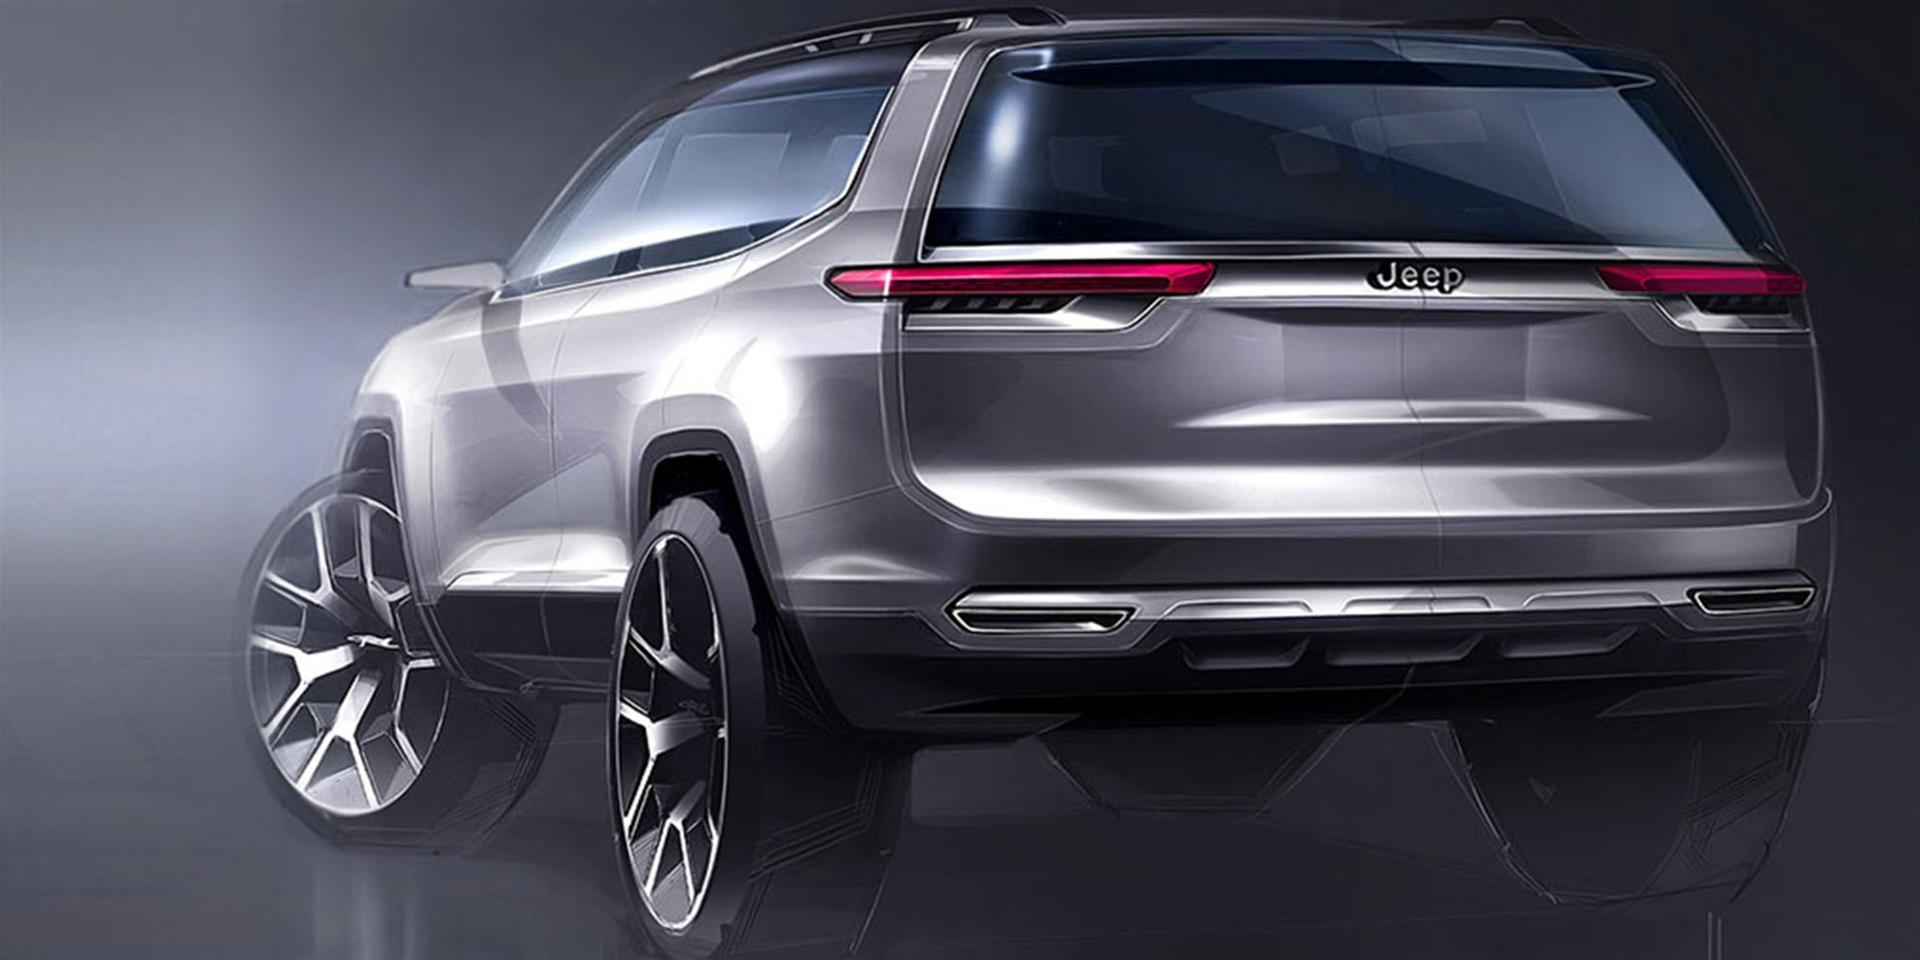 2020 Jeep Yuntu Relase Date and Prices